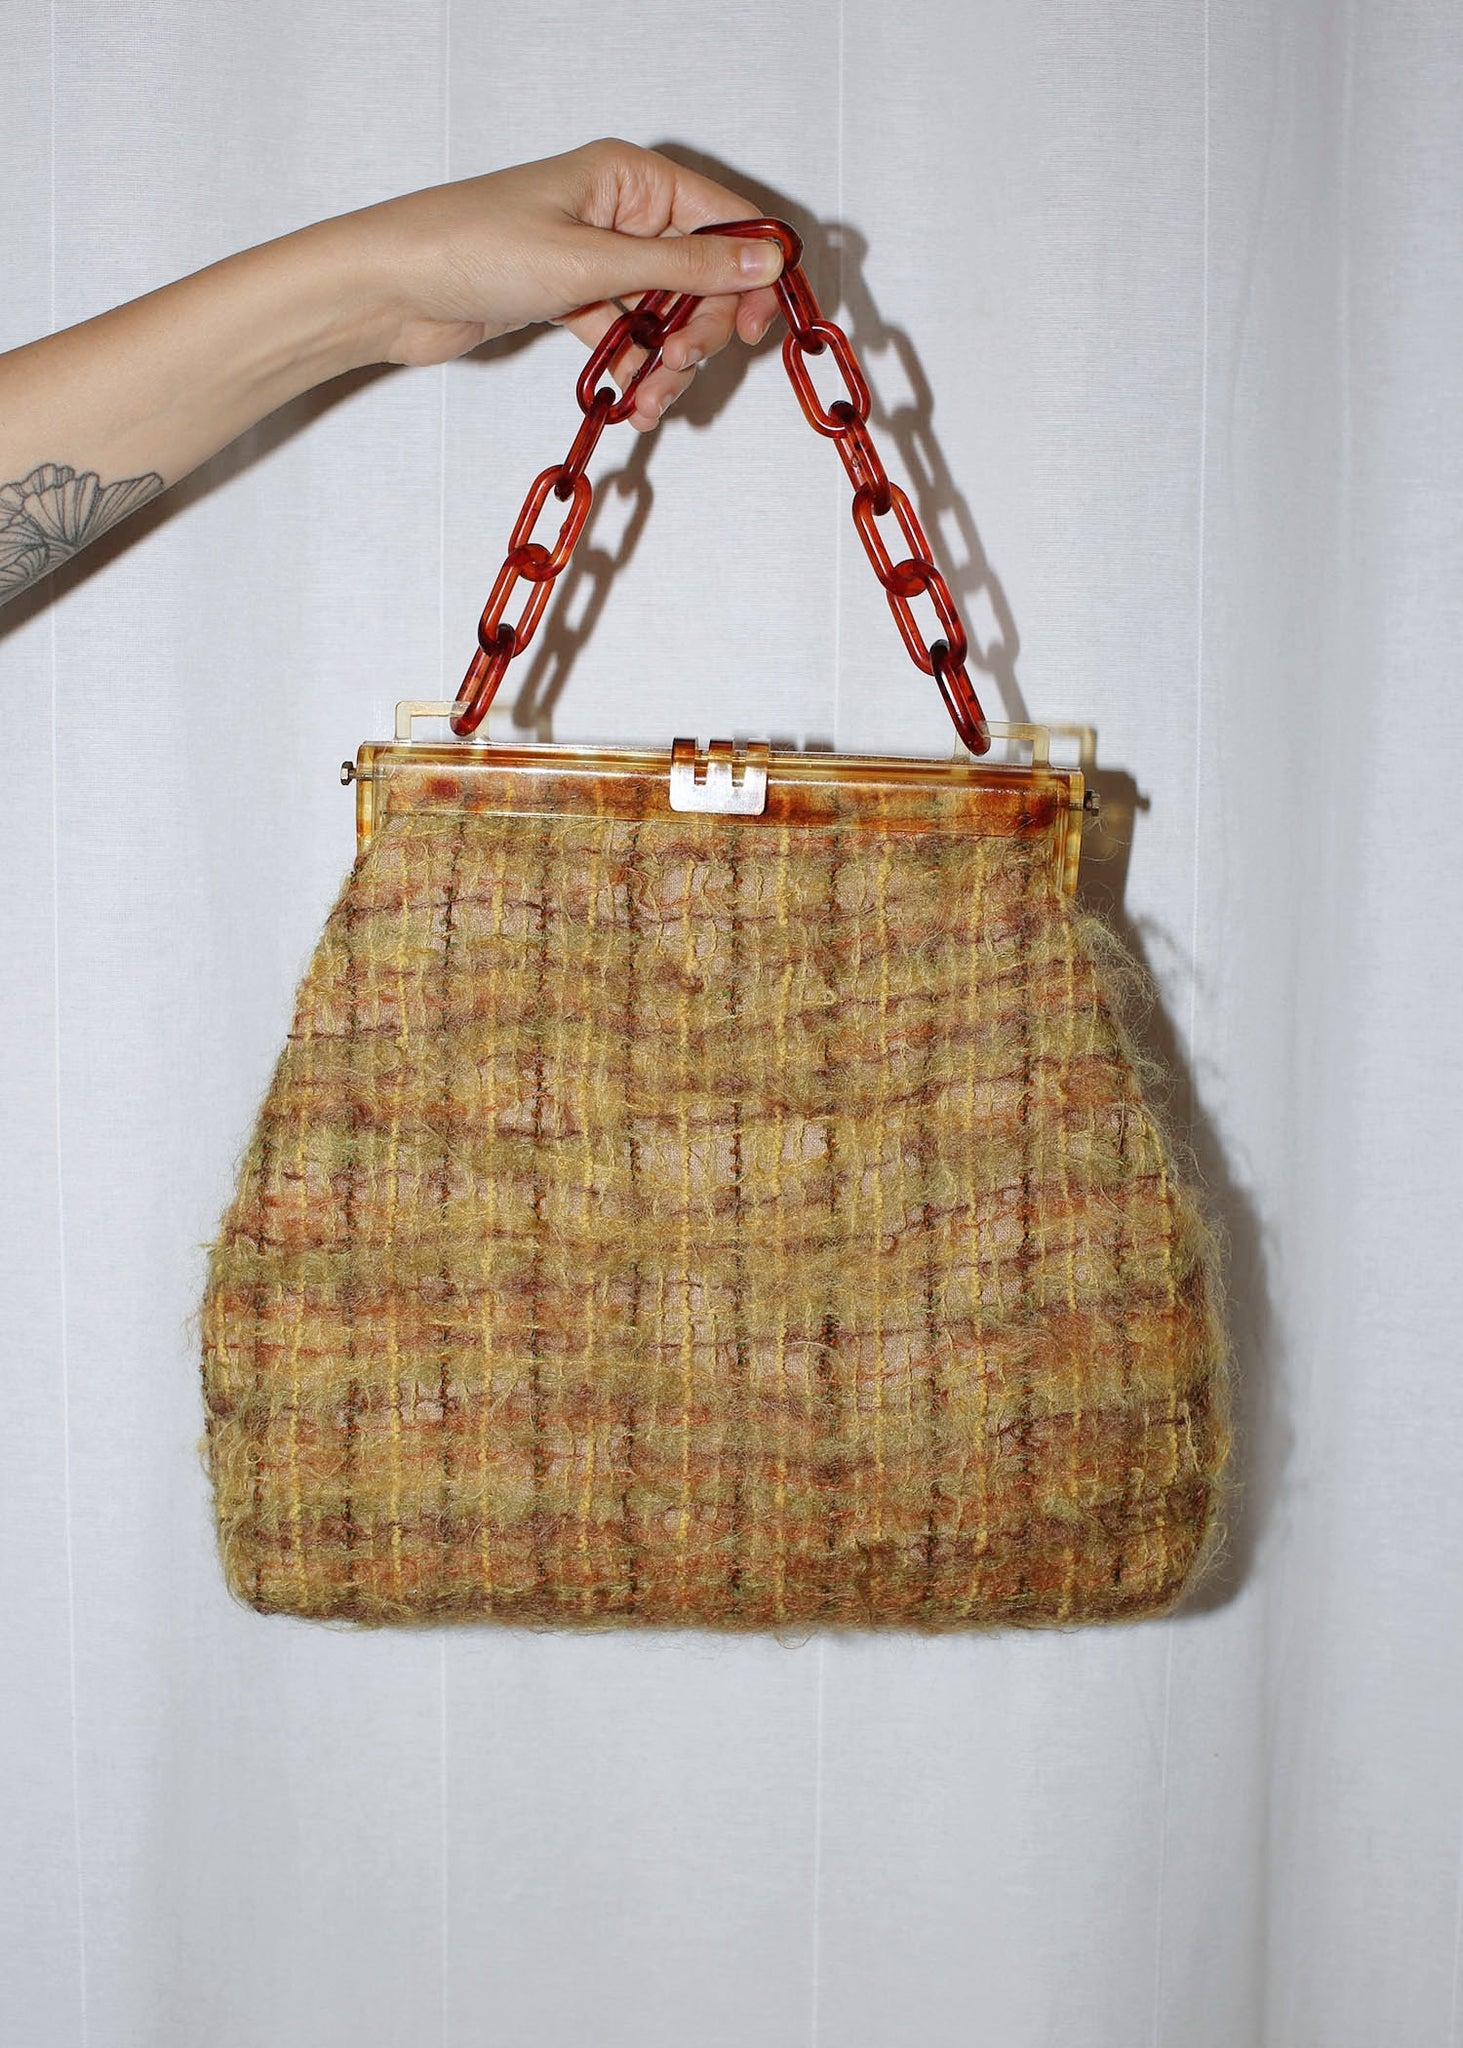 VINTAGE 70'S HANDWOVEN PURSE WITH LUCITE HANDLE